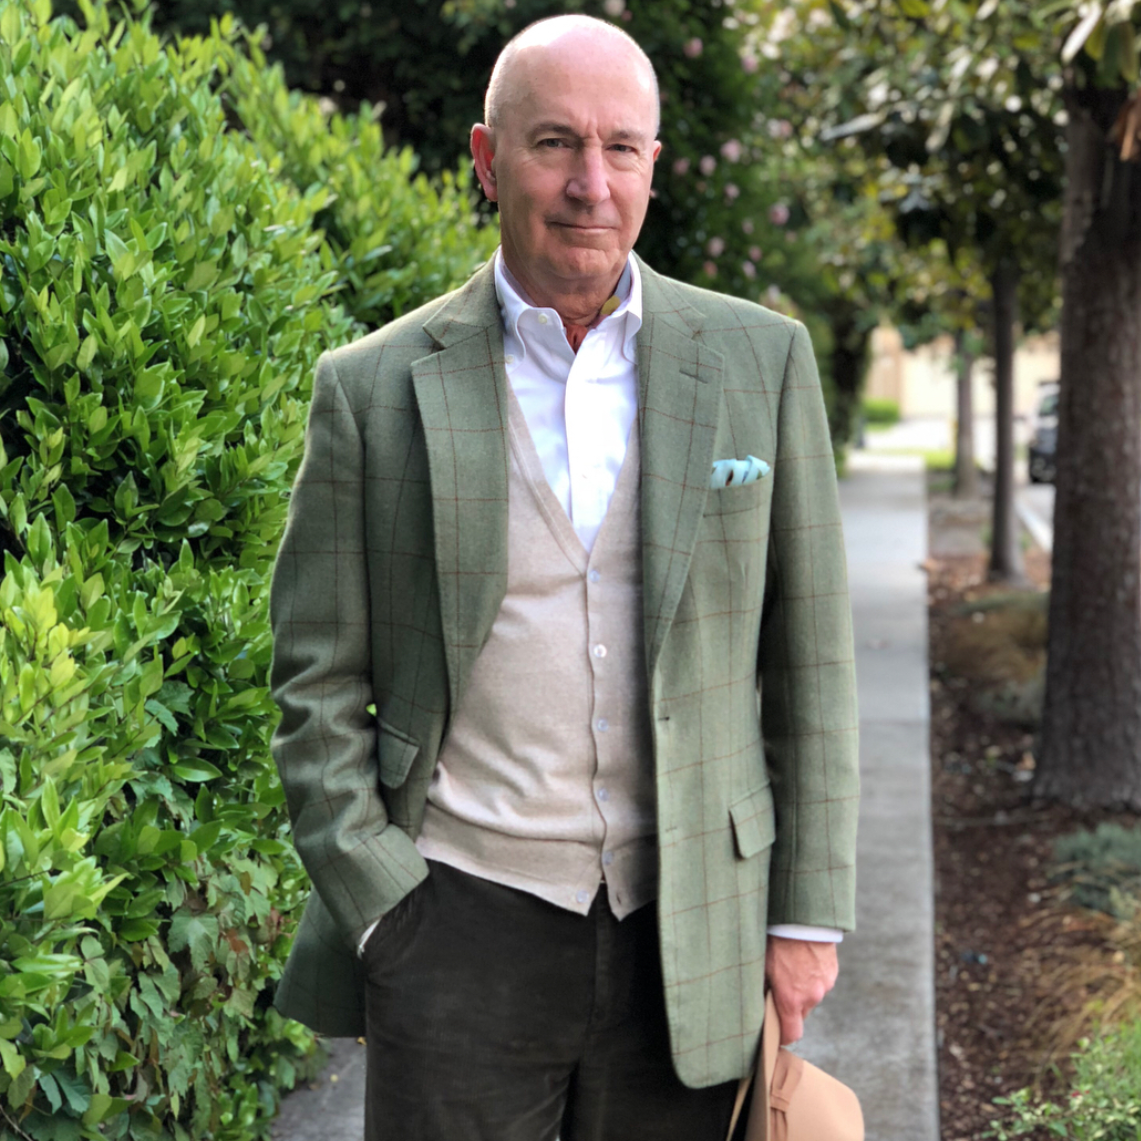 @stylefter50 wearing a muted green sport coat.